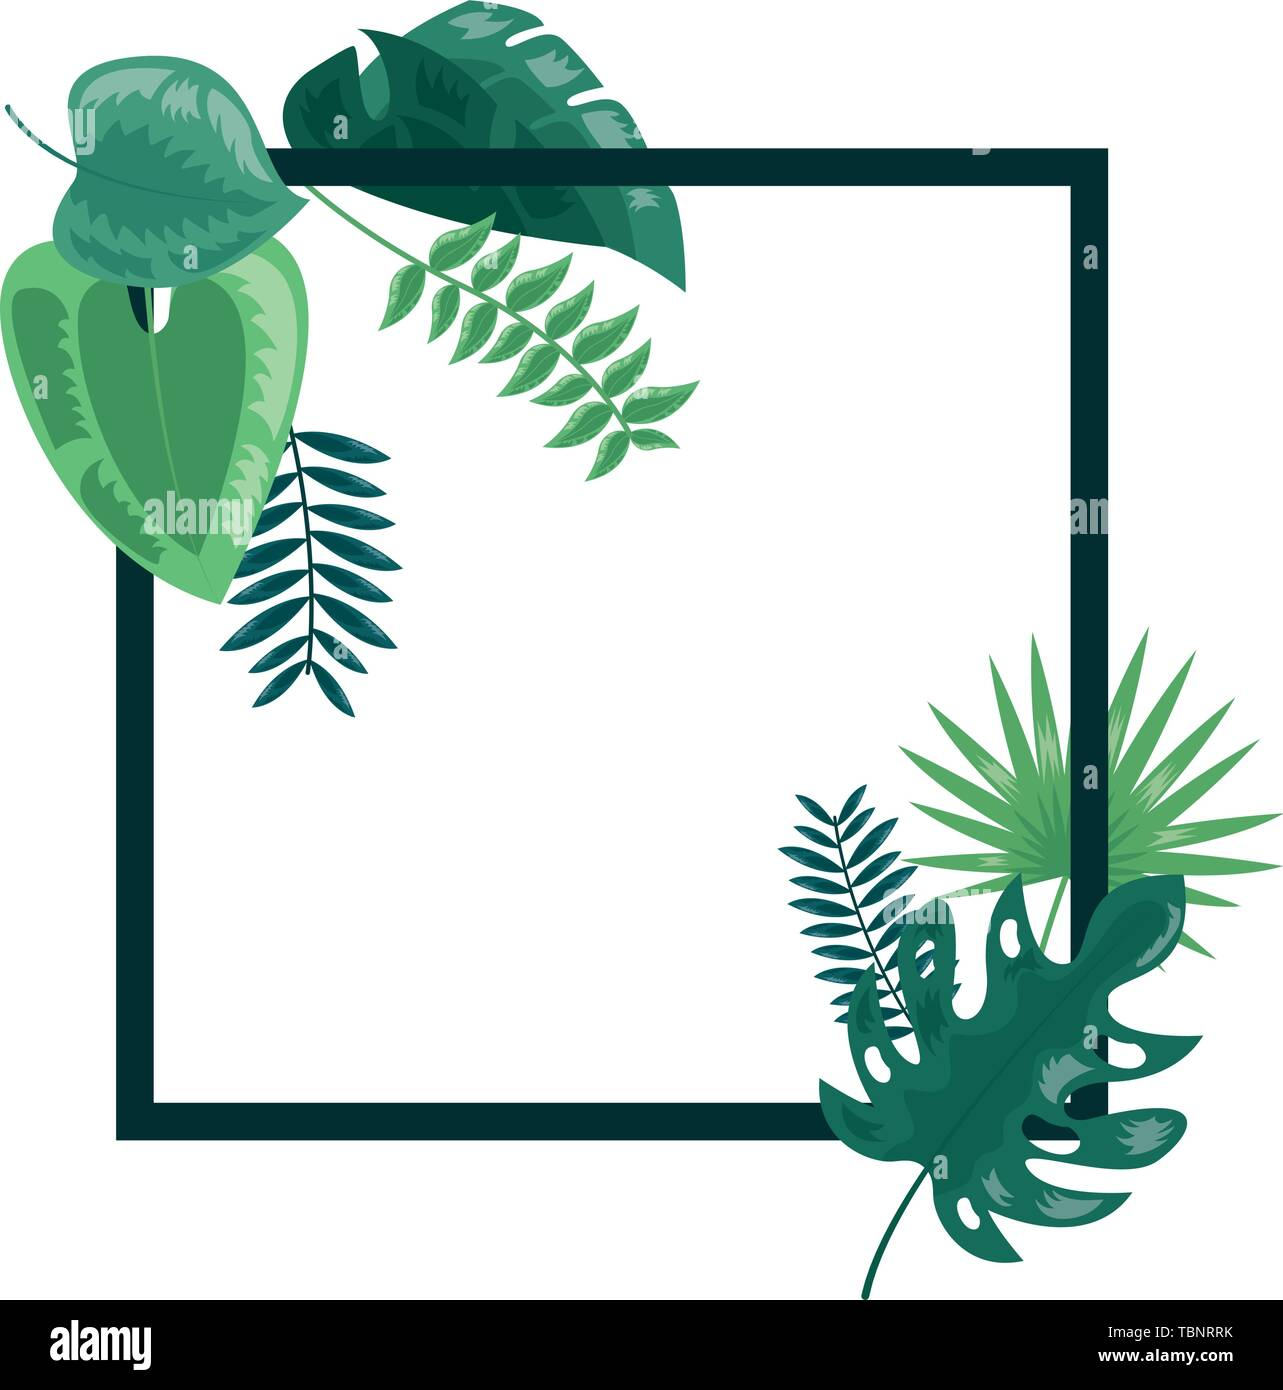 Tropical Leaves Foliage Frame Decoration Stock Vector Image Art Alamy The design also has a white frame and lots of space to add images or text. https www alamy com tropical leaves foliage frame decoration image248186055 html